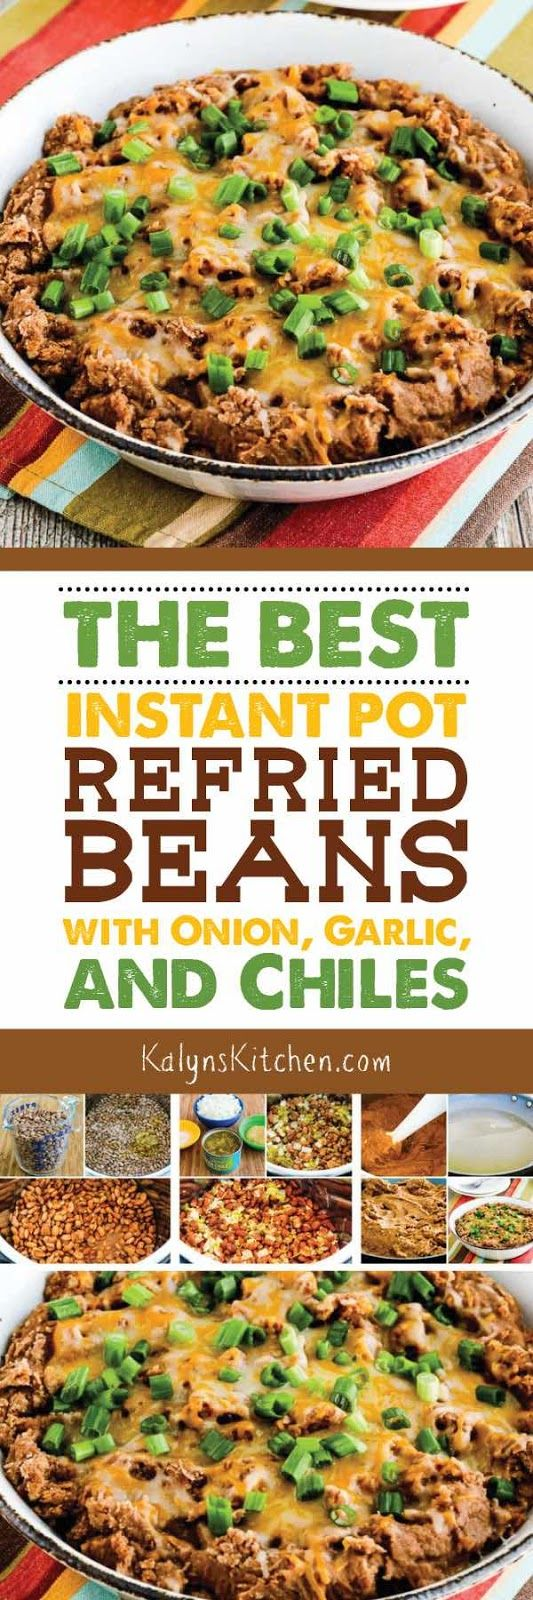 The seasonings I use really do make these The BEST Instant Pot Refried Beans (with Onion, Garlic, and Chiles). And these tasty beans are low-glycemic, gluten-free, meatless, and South Beach Diet friendly. [found on KalynsKitchen.com] #InstantPot #PressureCooker #InstantPotRefriedBeans #RubiosCopycatBeans #PressureCookerRefriedBeans